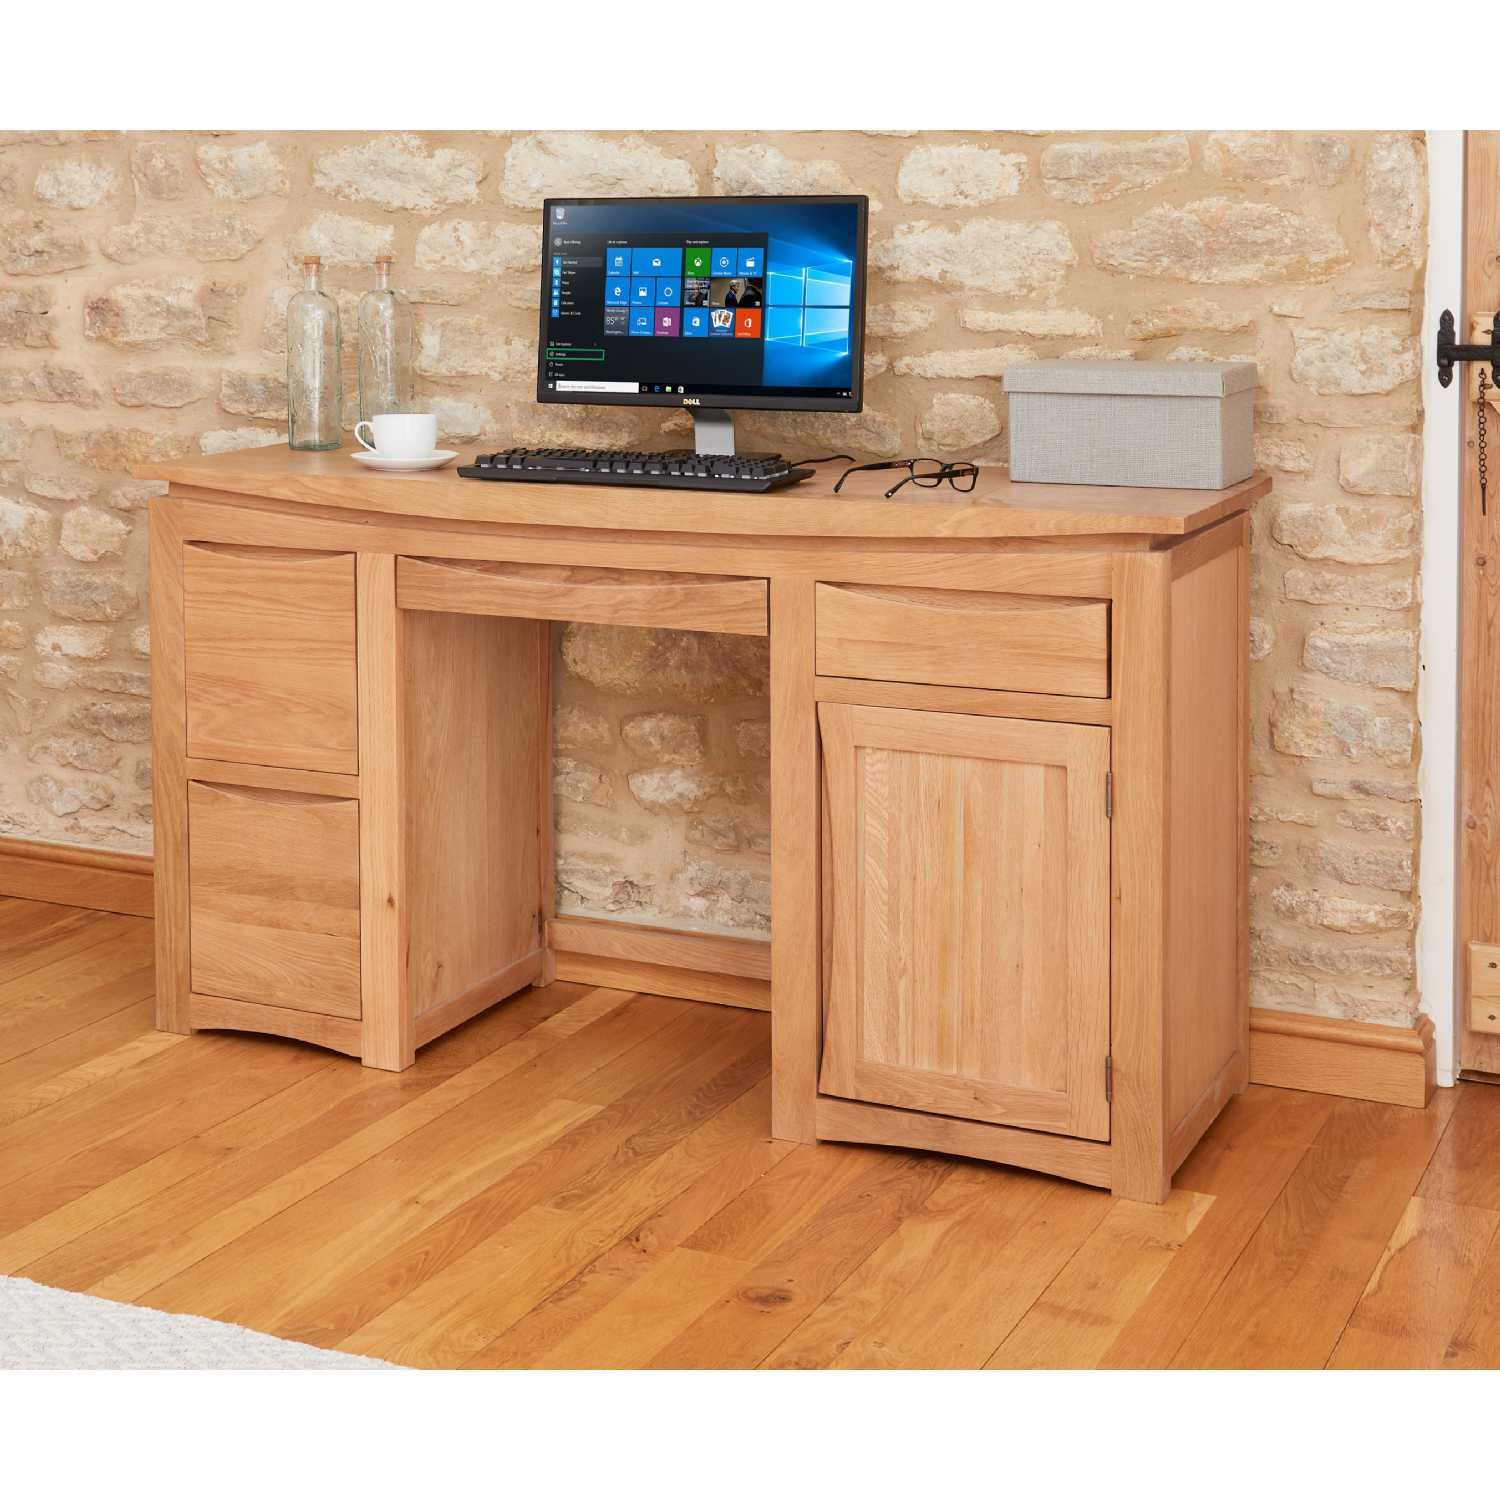 Image of: Modern Light Solid Oak Home Office Computer Study Desk With Keyboard Tray 2 Filing Drawers And Cupboard